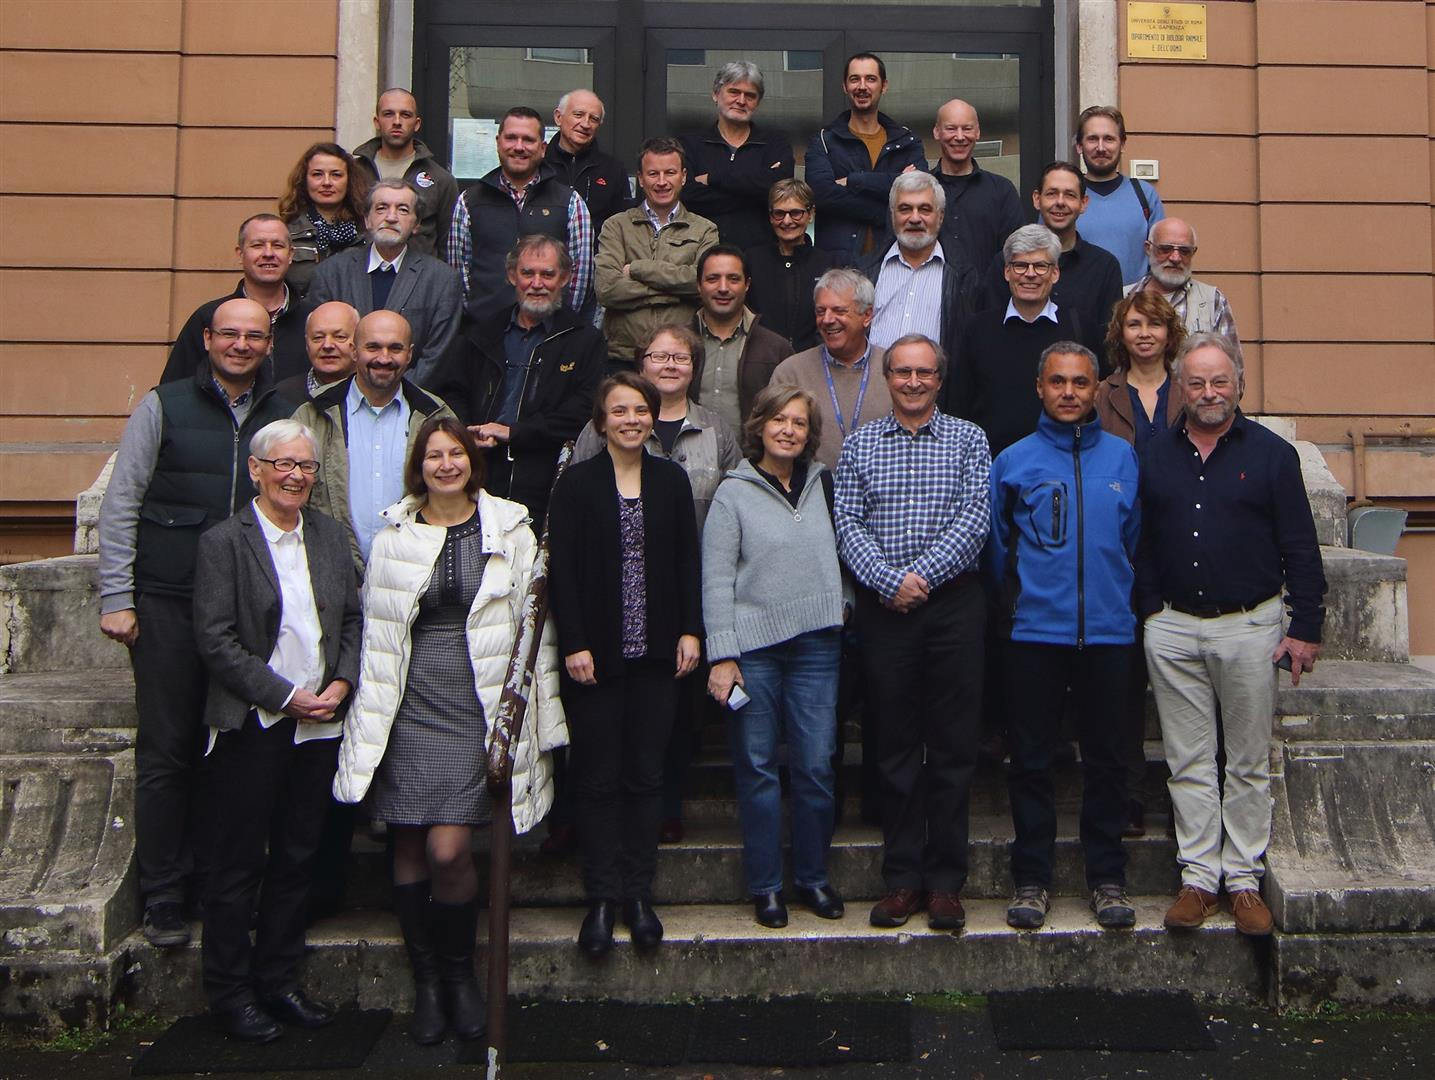 Attendees at the Rome meeting